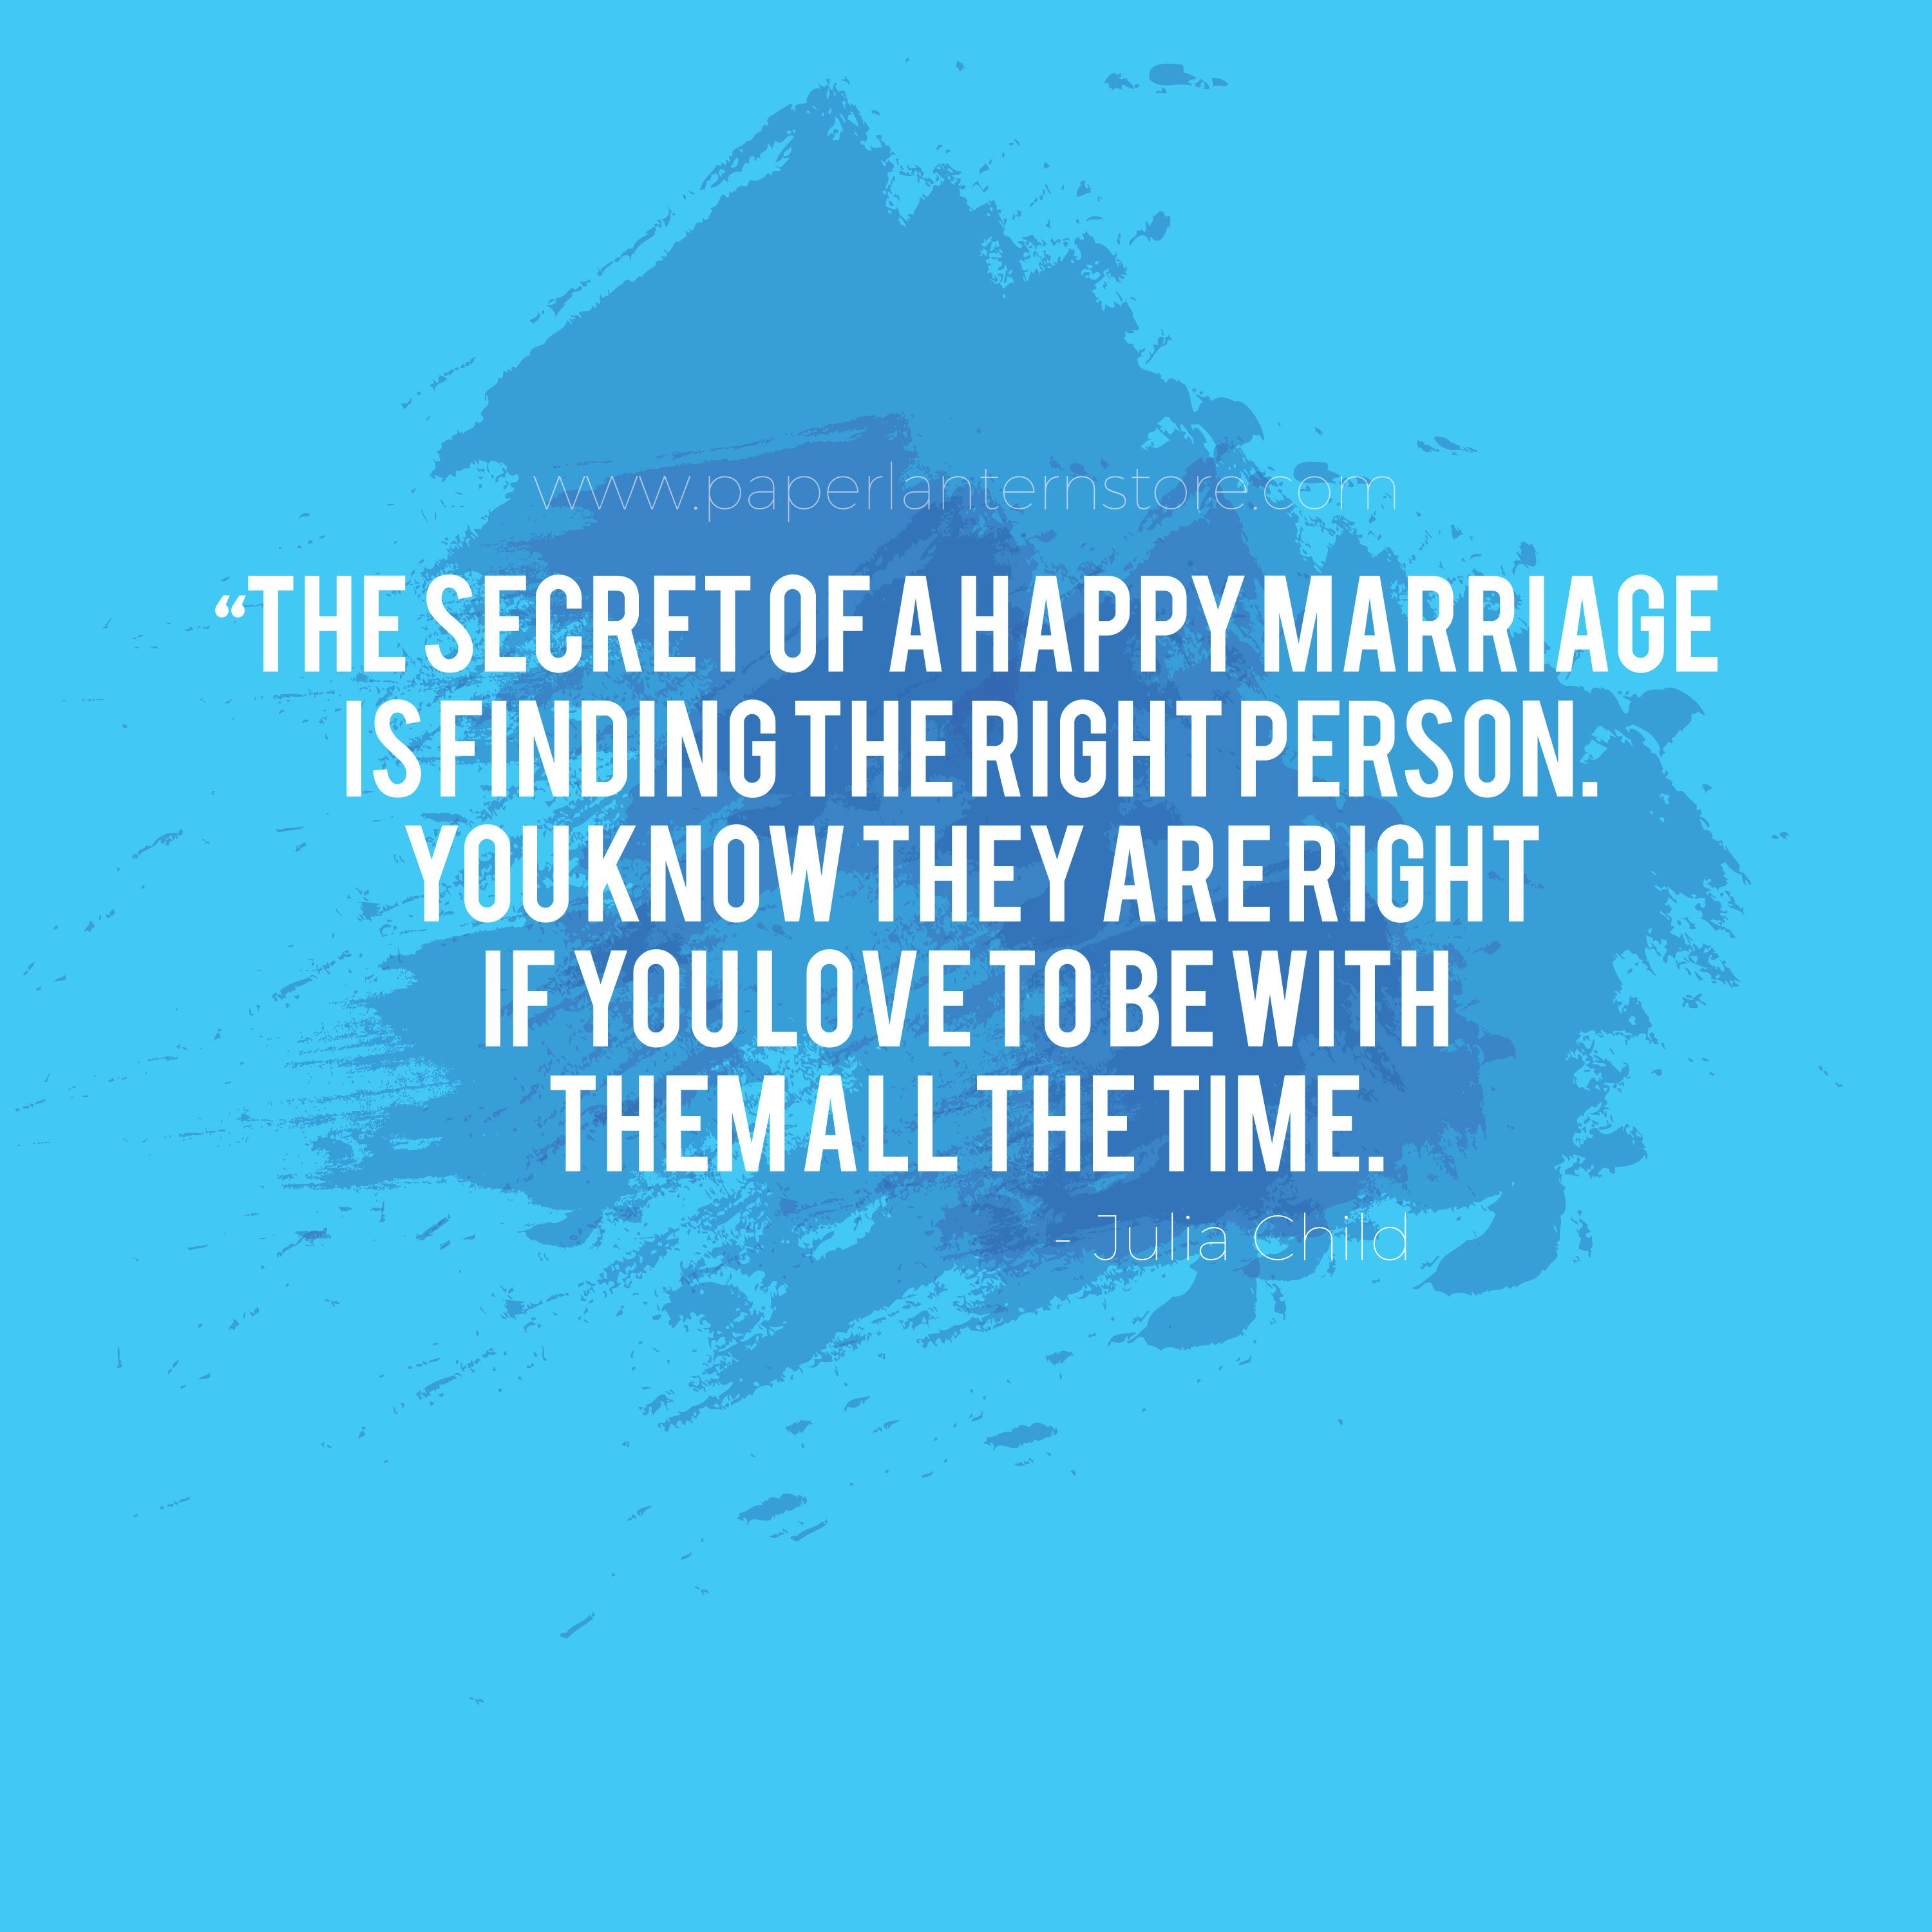 Know The Secret Of Having A Happy Marriage! (With Images